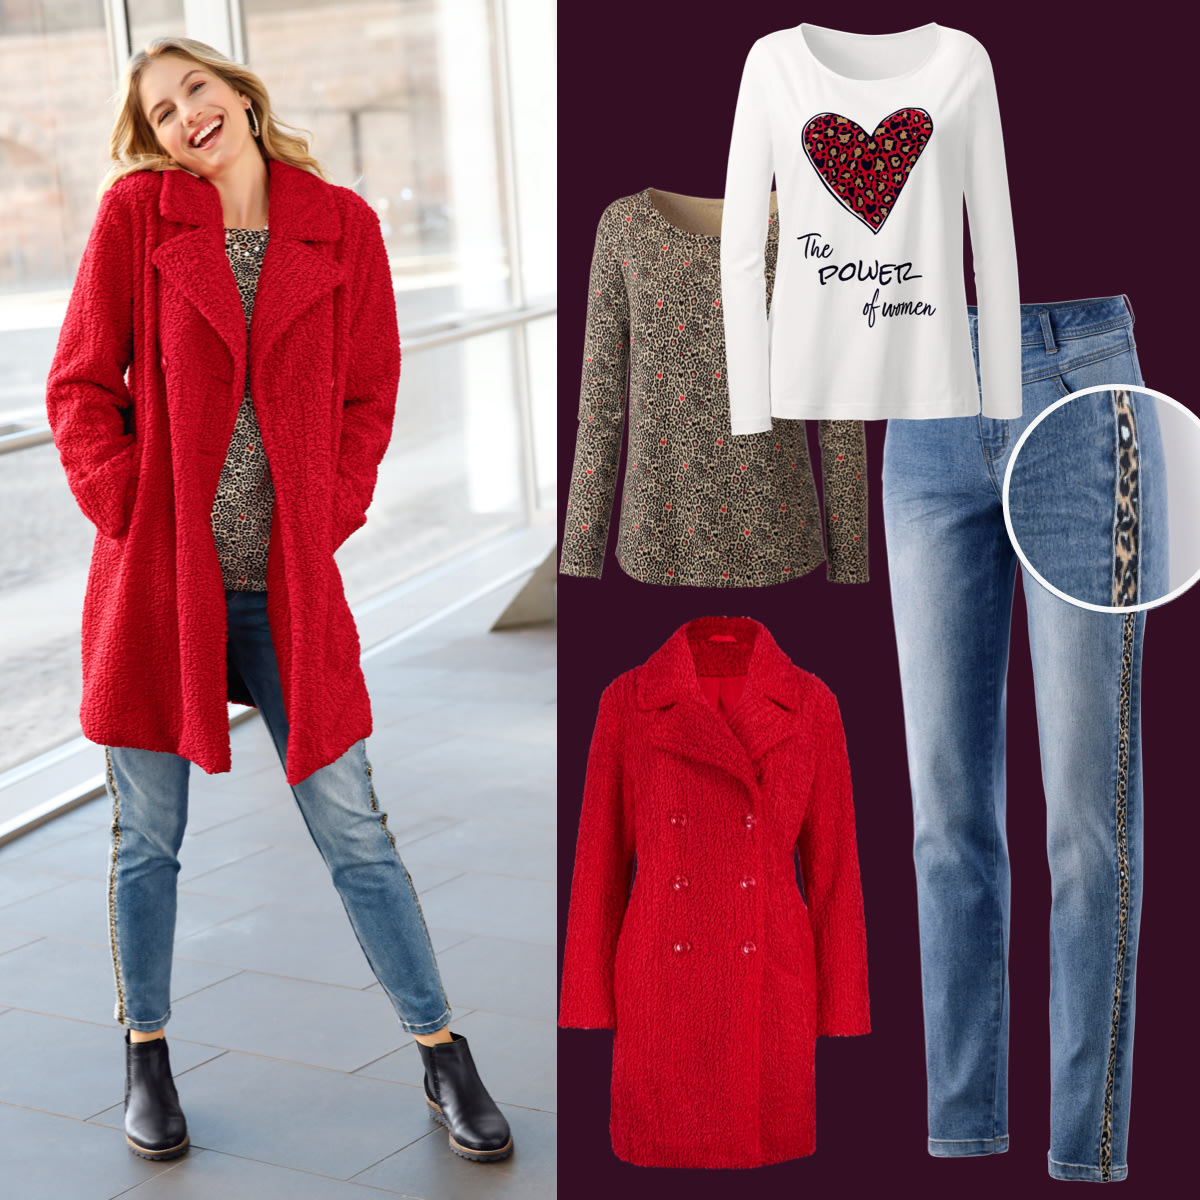 144 kw37 facebook outfit herbstoutfit